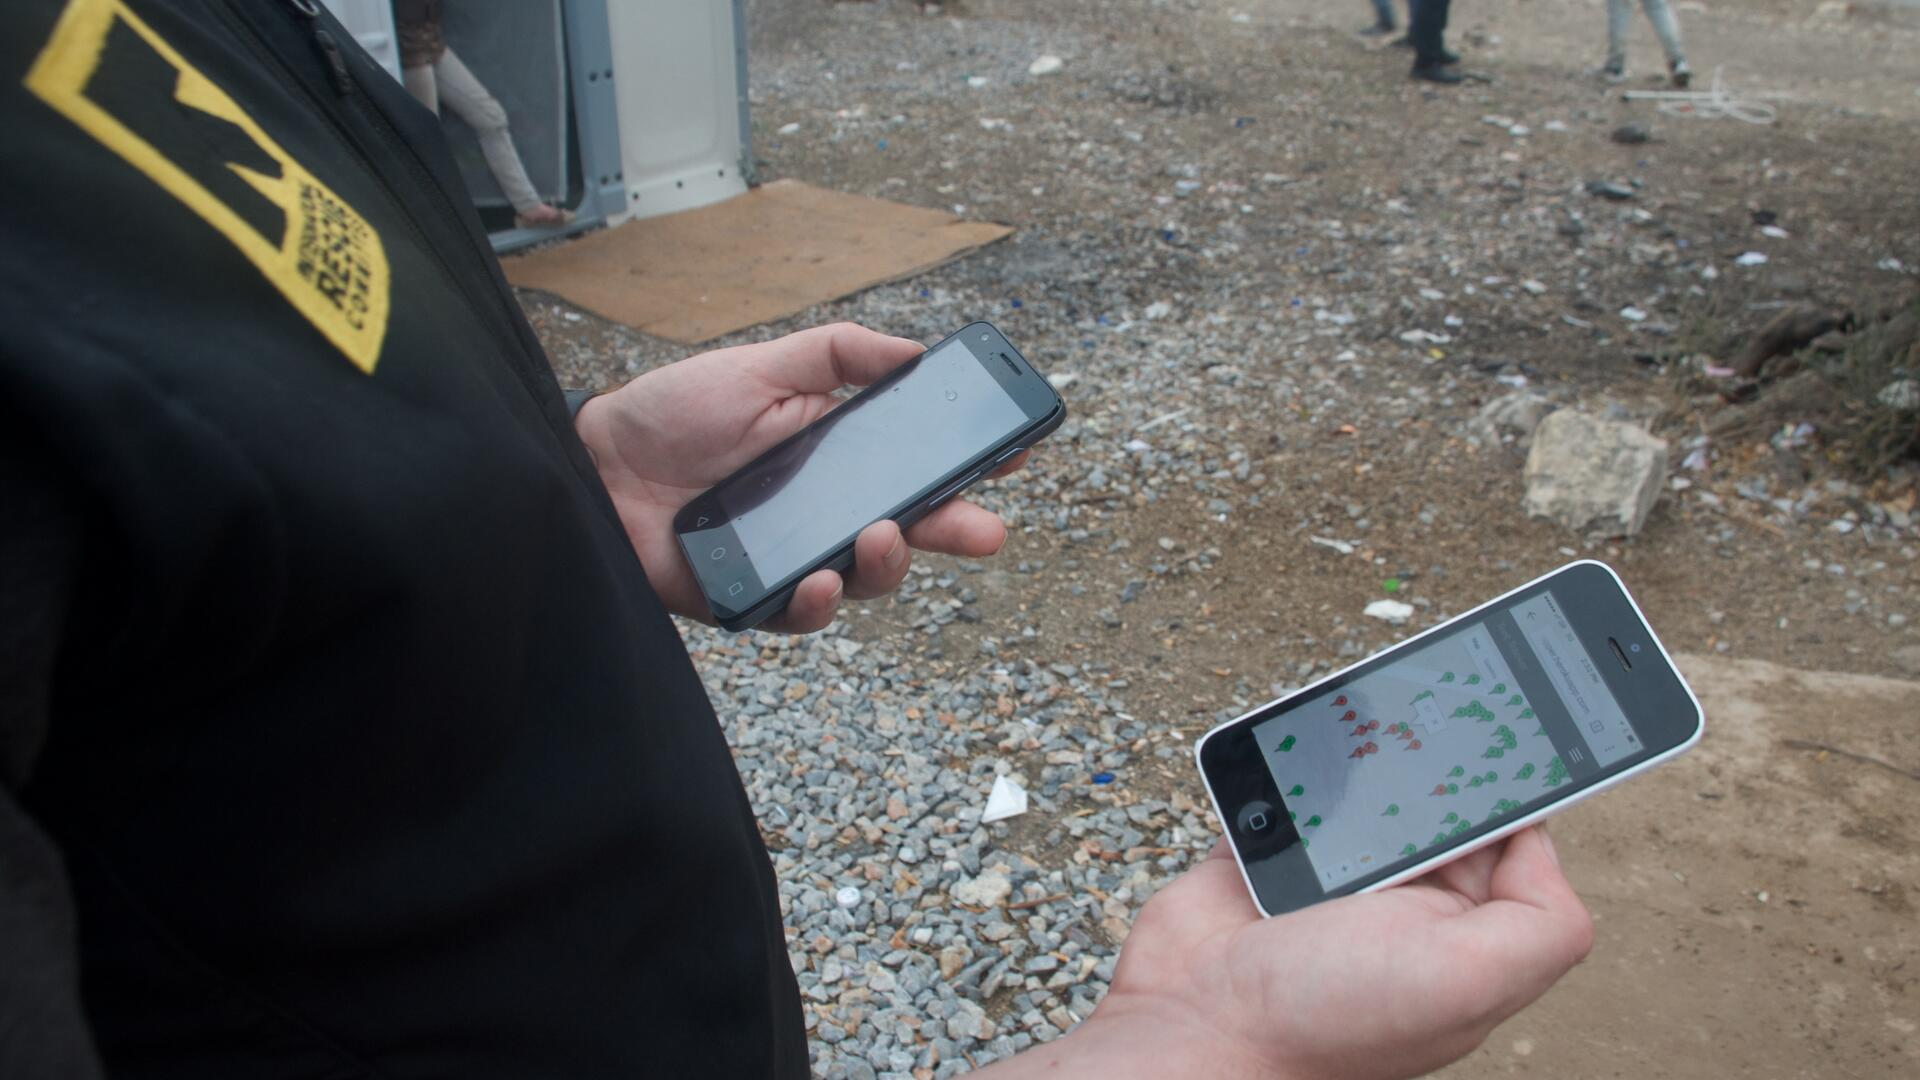 An IRC aid worker in Greece looks at an IRC  shelter mapping app on a smartphone